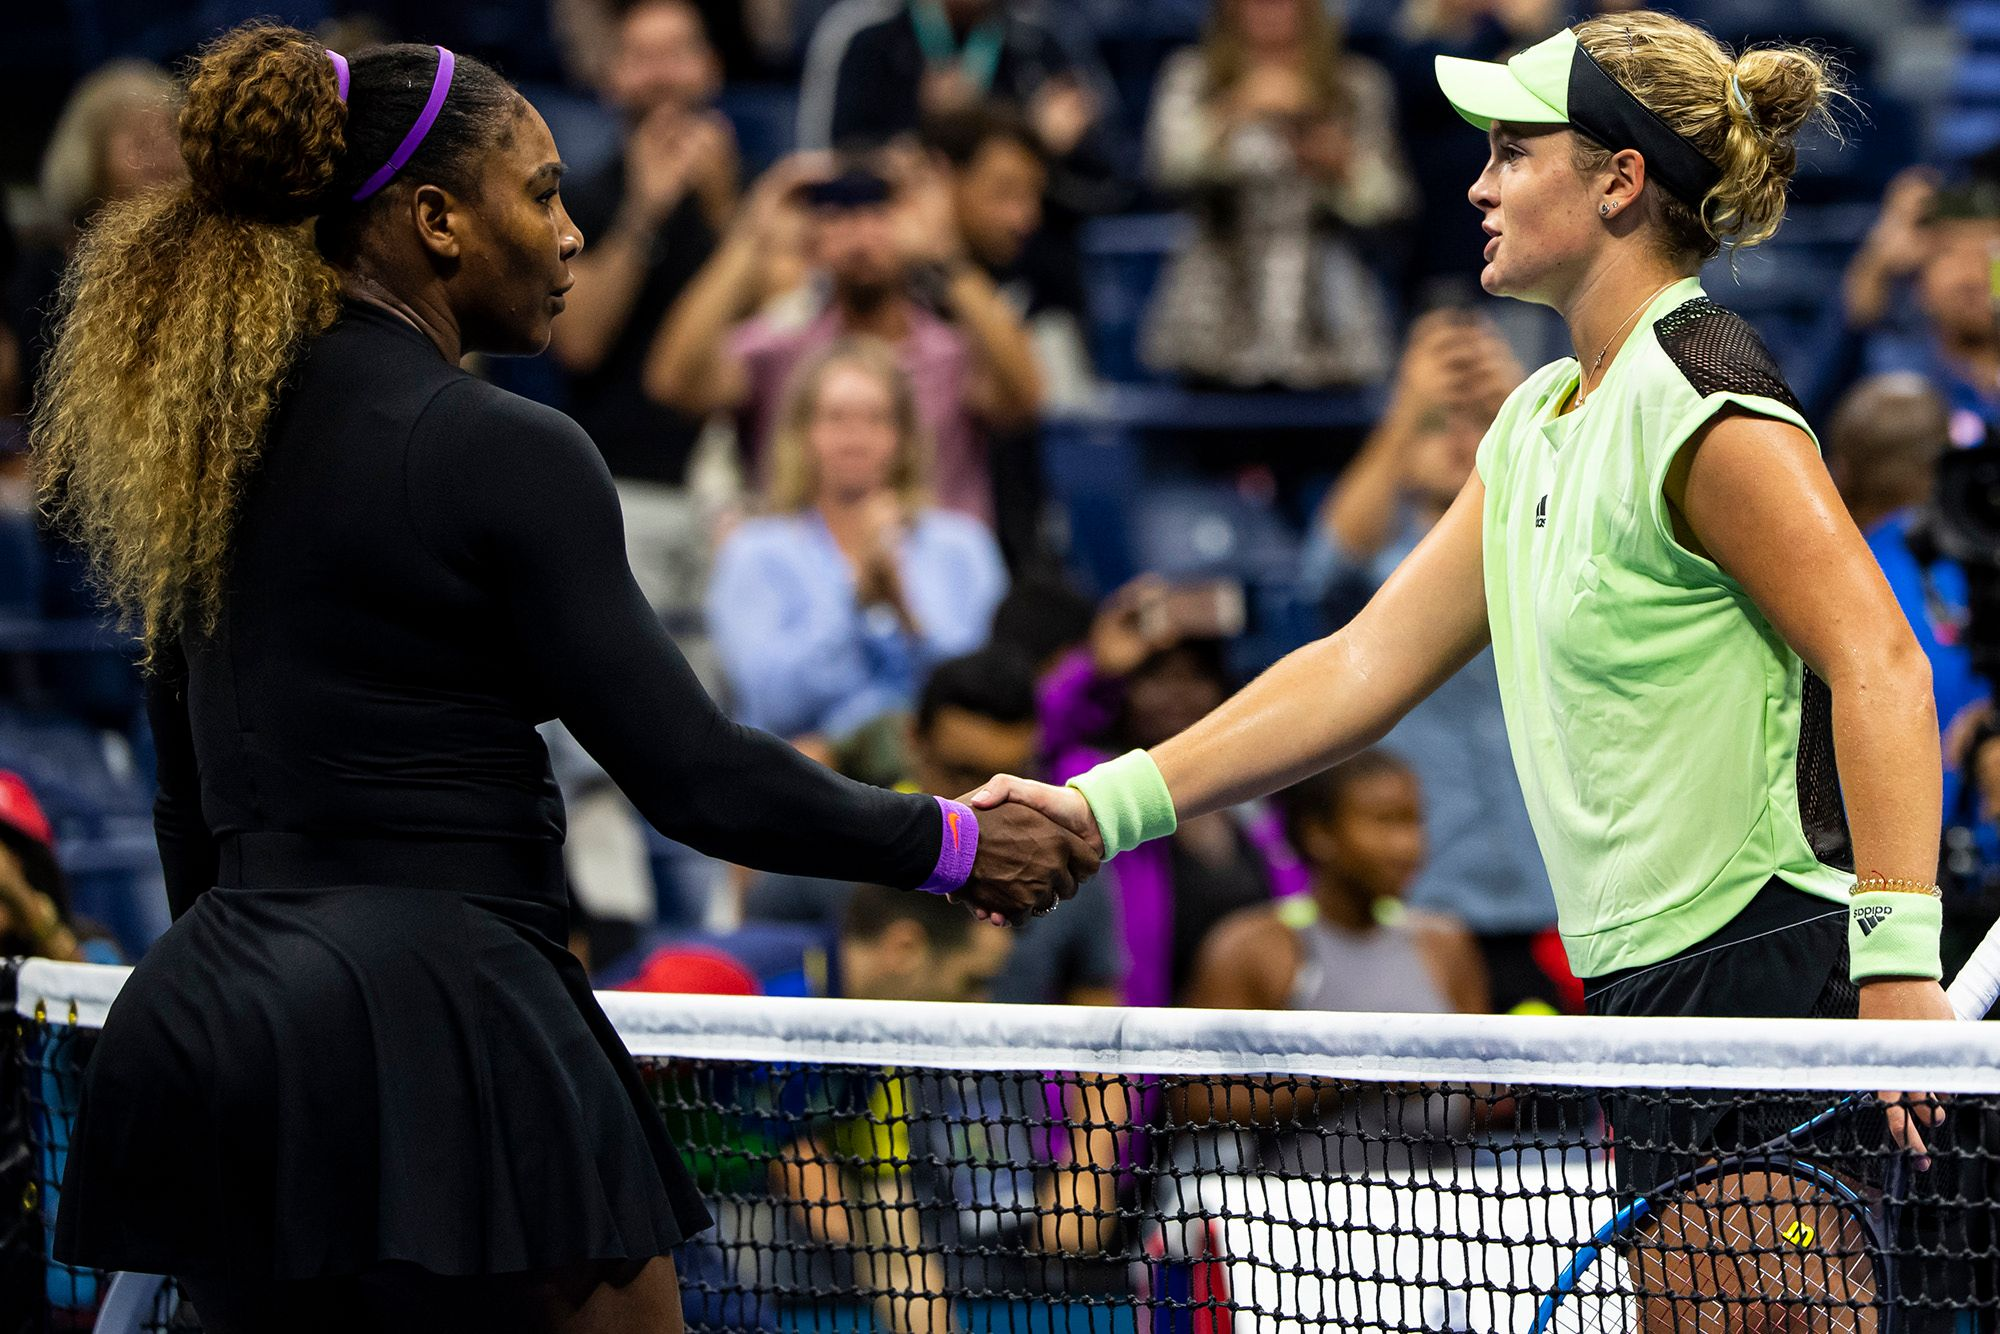 Serena Williams and Caty McNally at the US Open